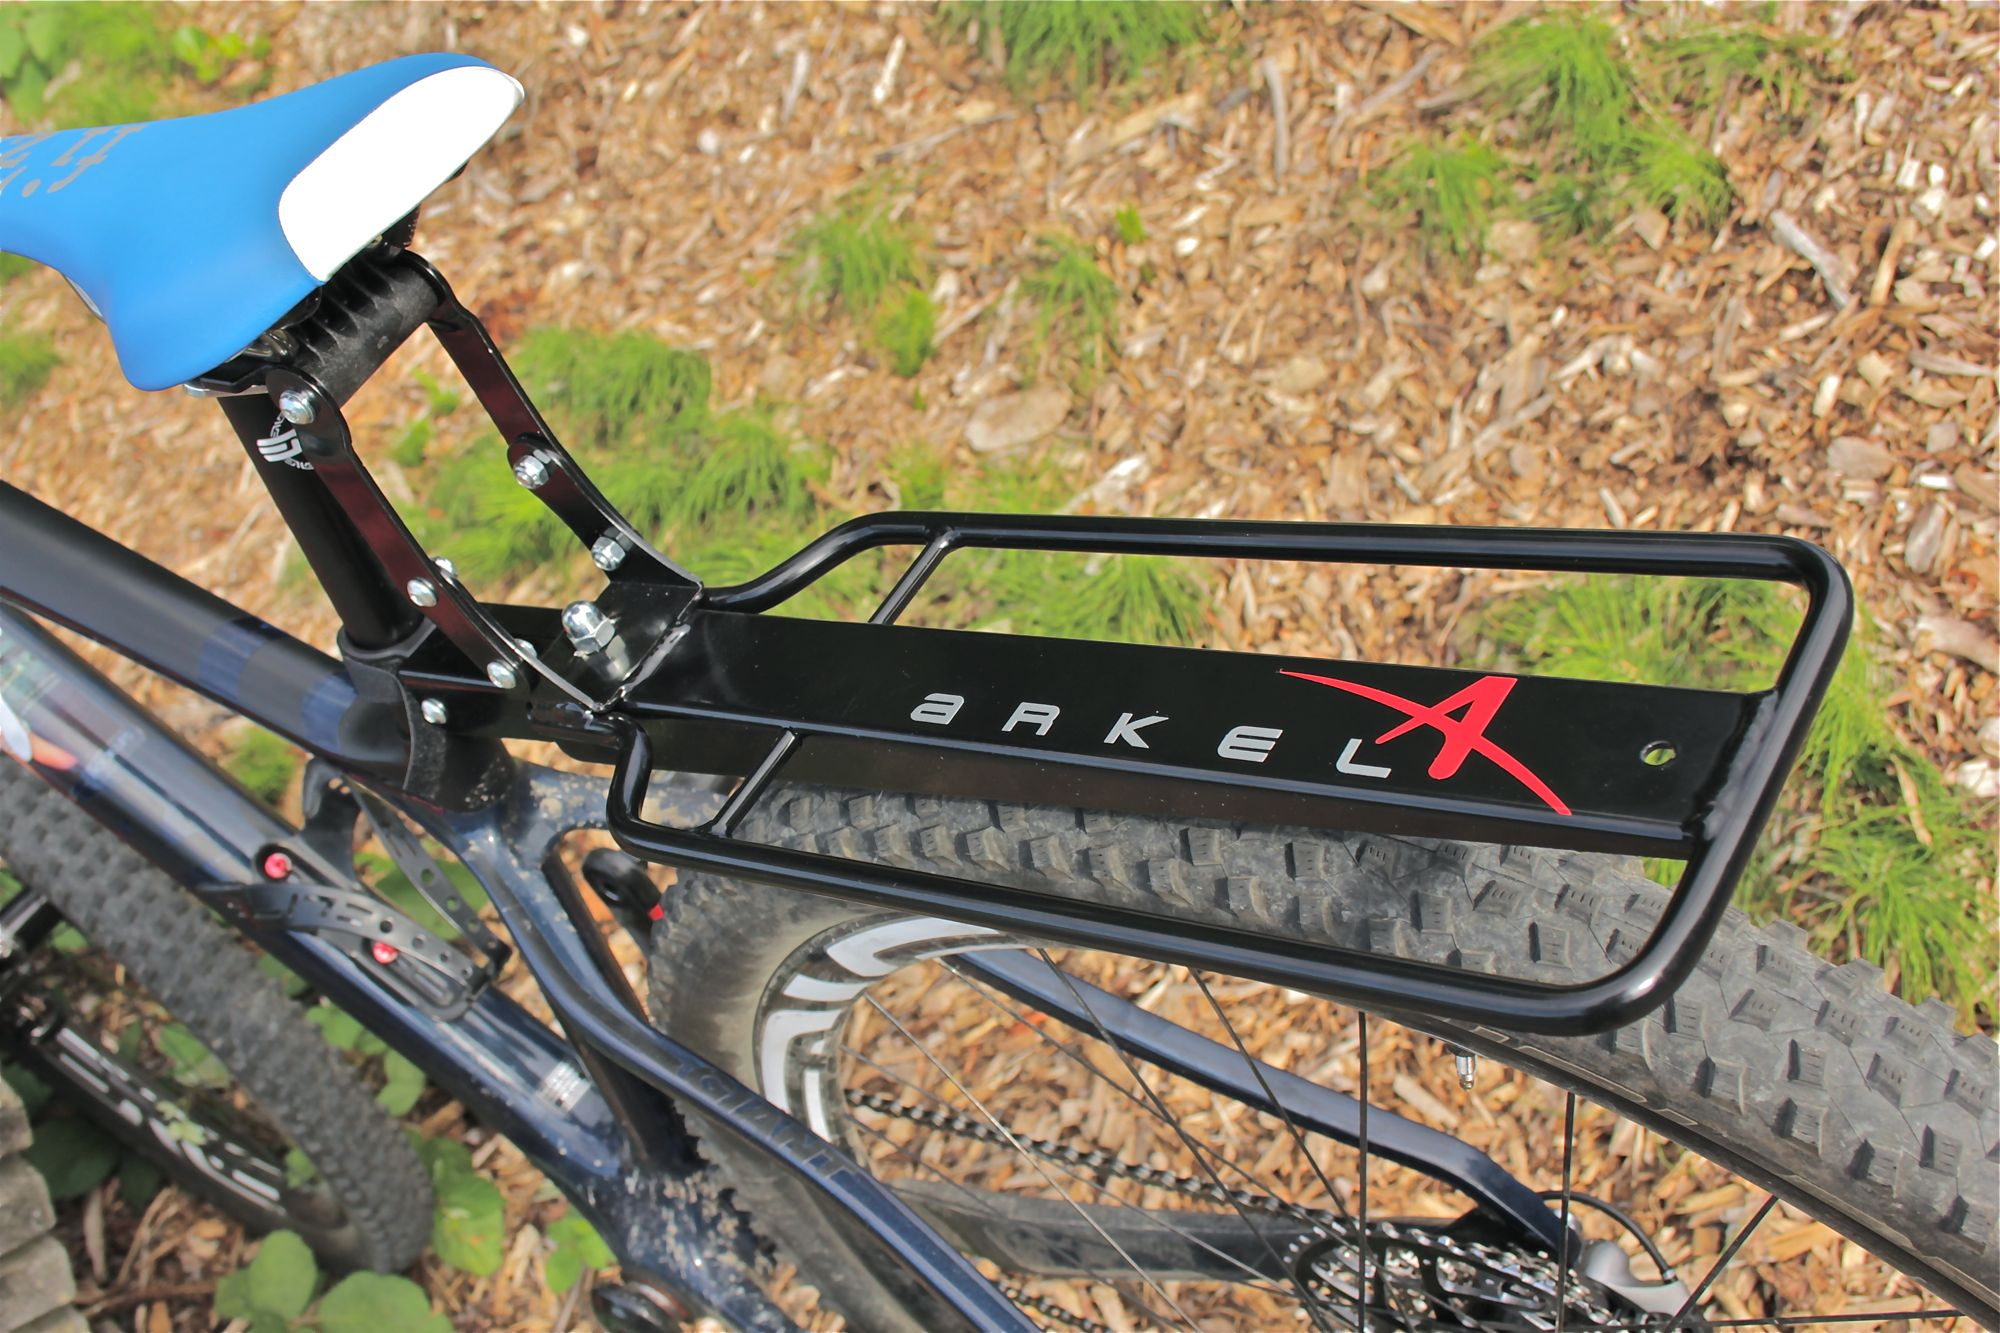 Trunk Mount Bike Rack >> Ortlieb Seatpost Bag and Arkel TailRider Bag with Seatpost Rack - Bike Hugger